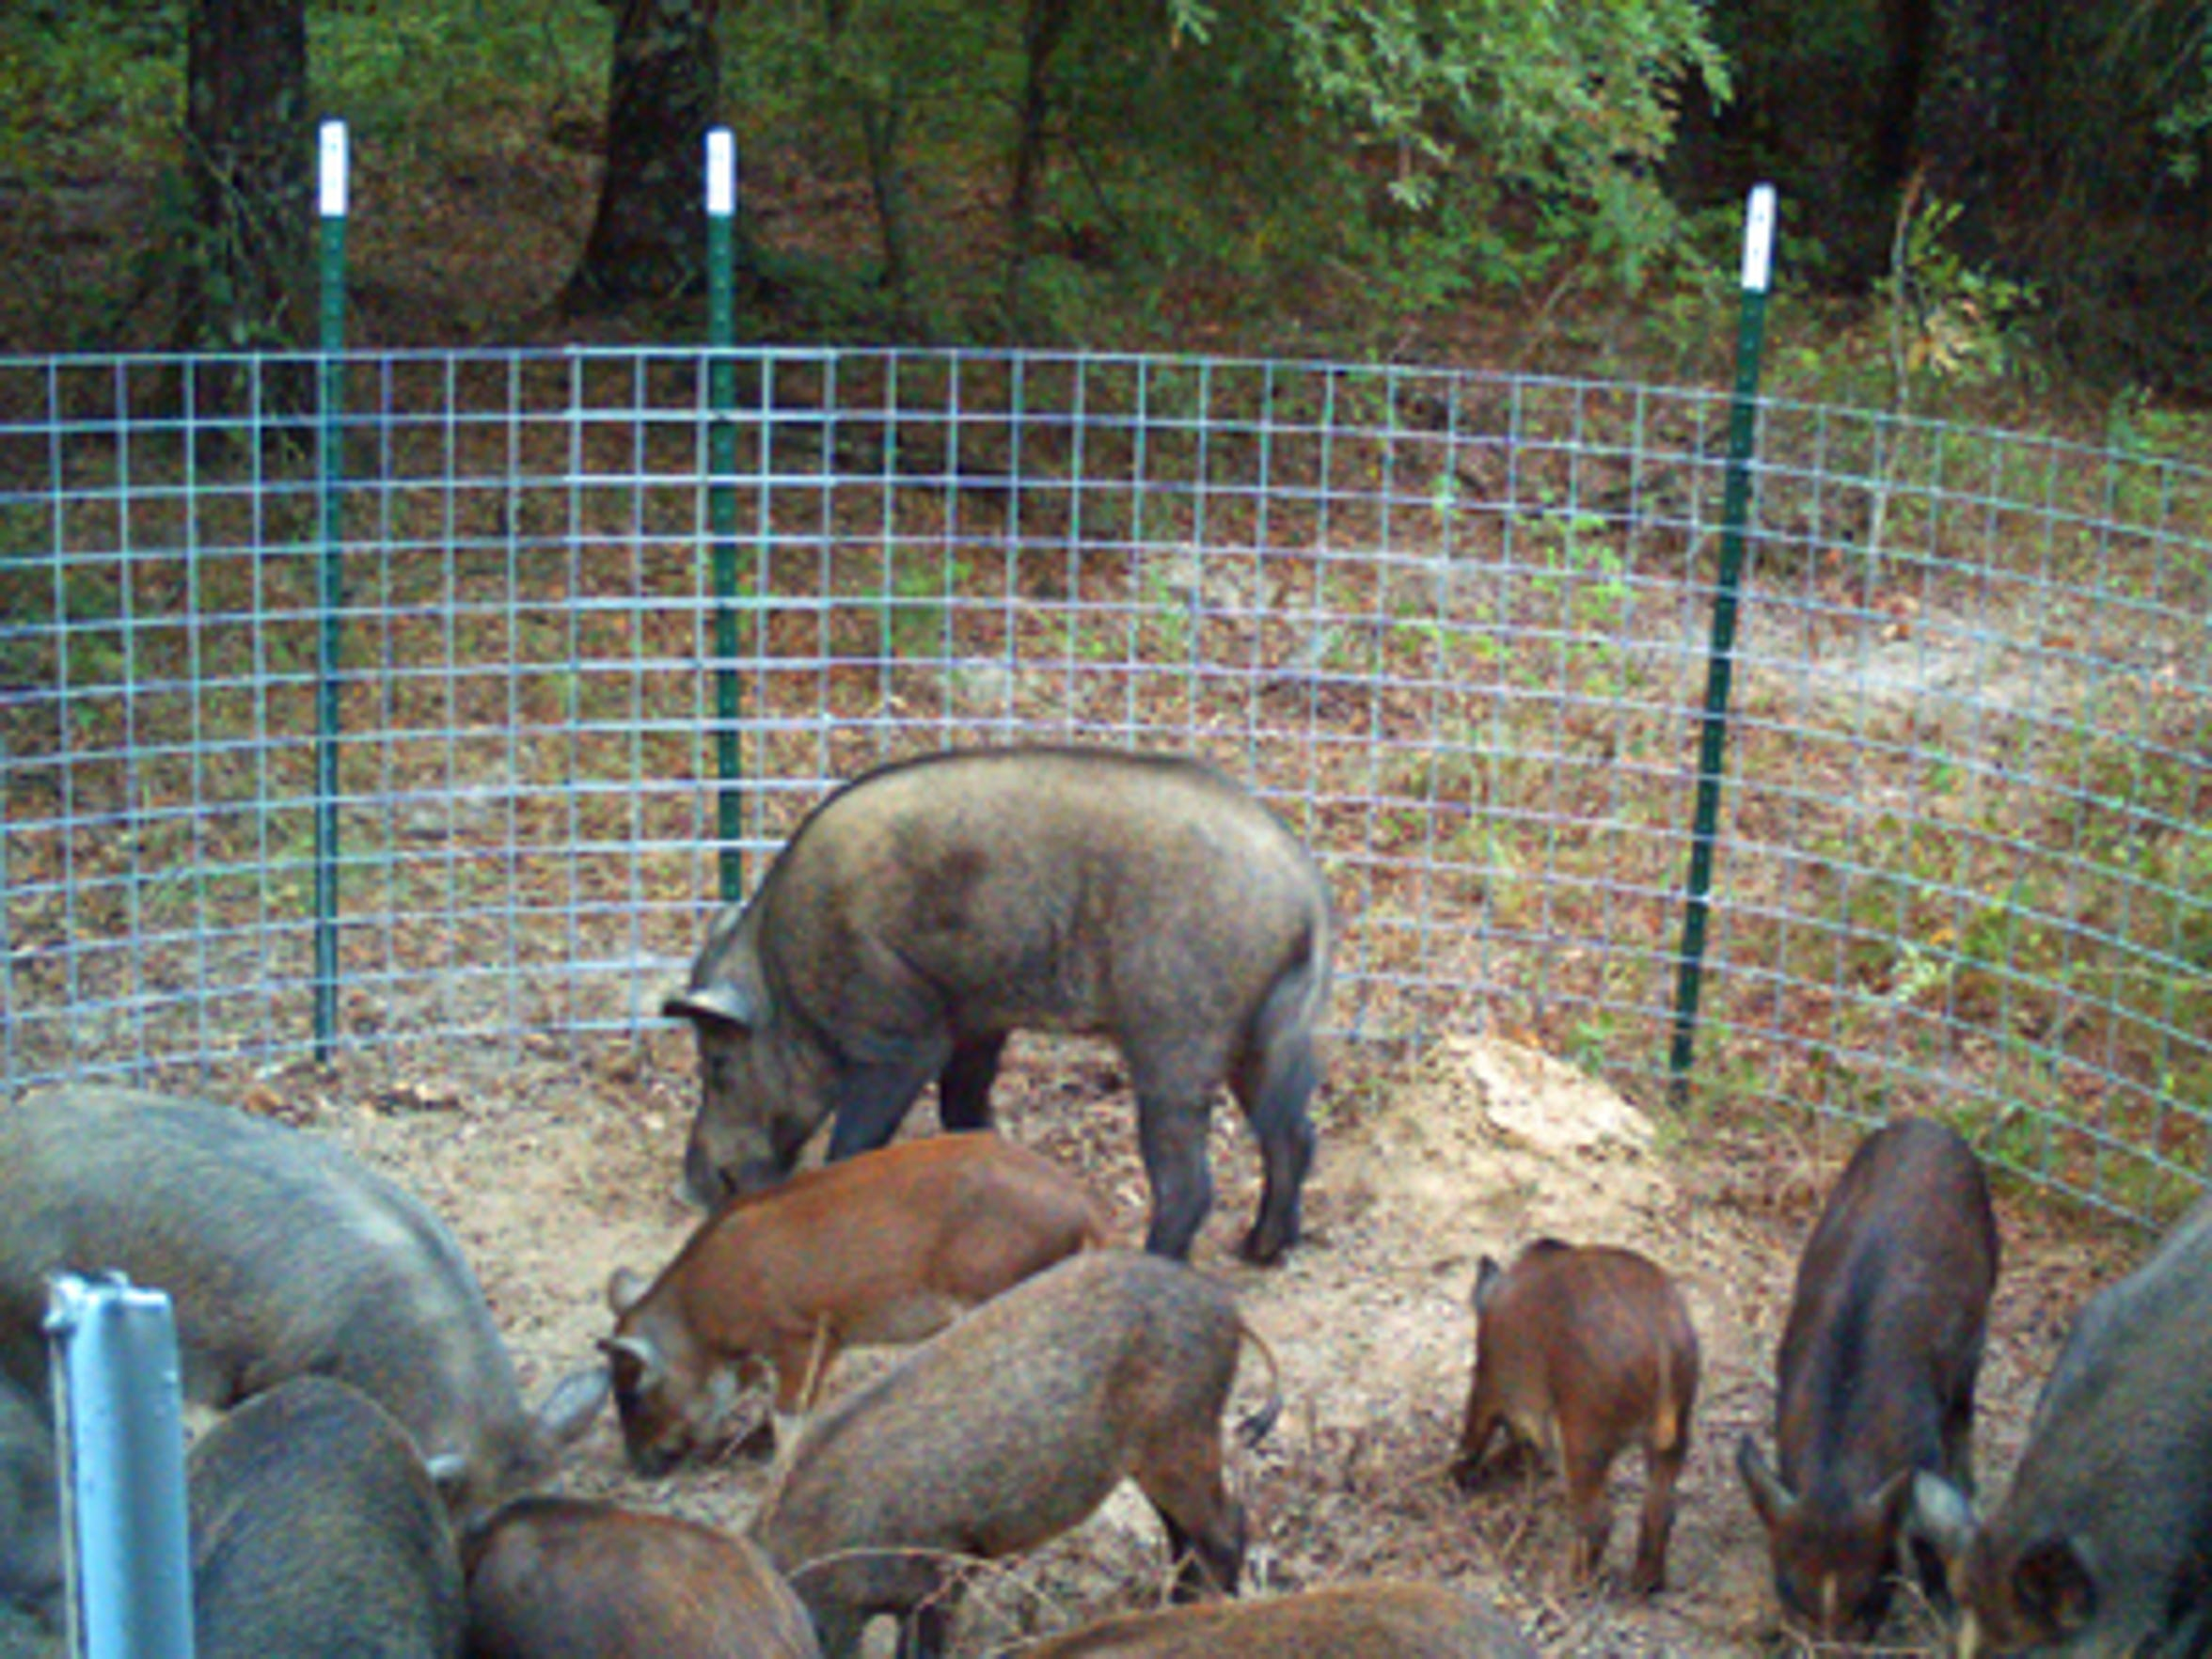 Hogs gone wild: Once established, feral hogs hard to contain